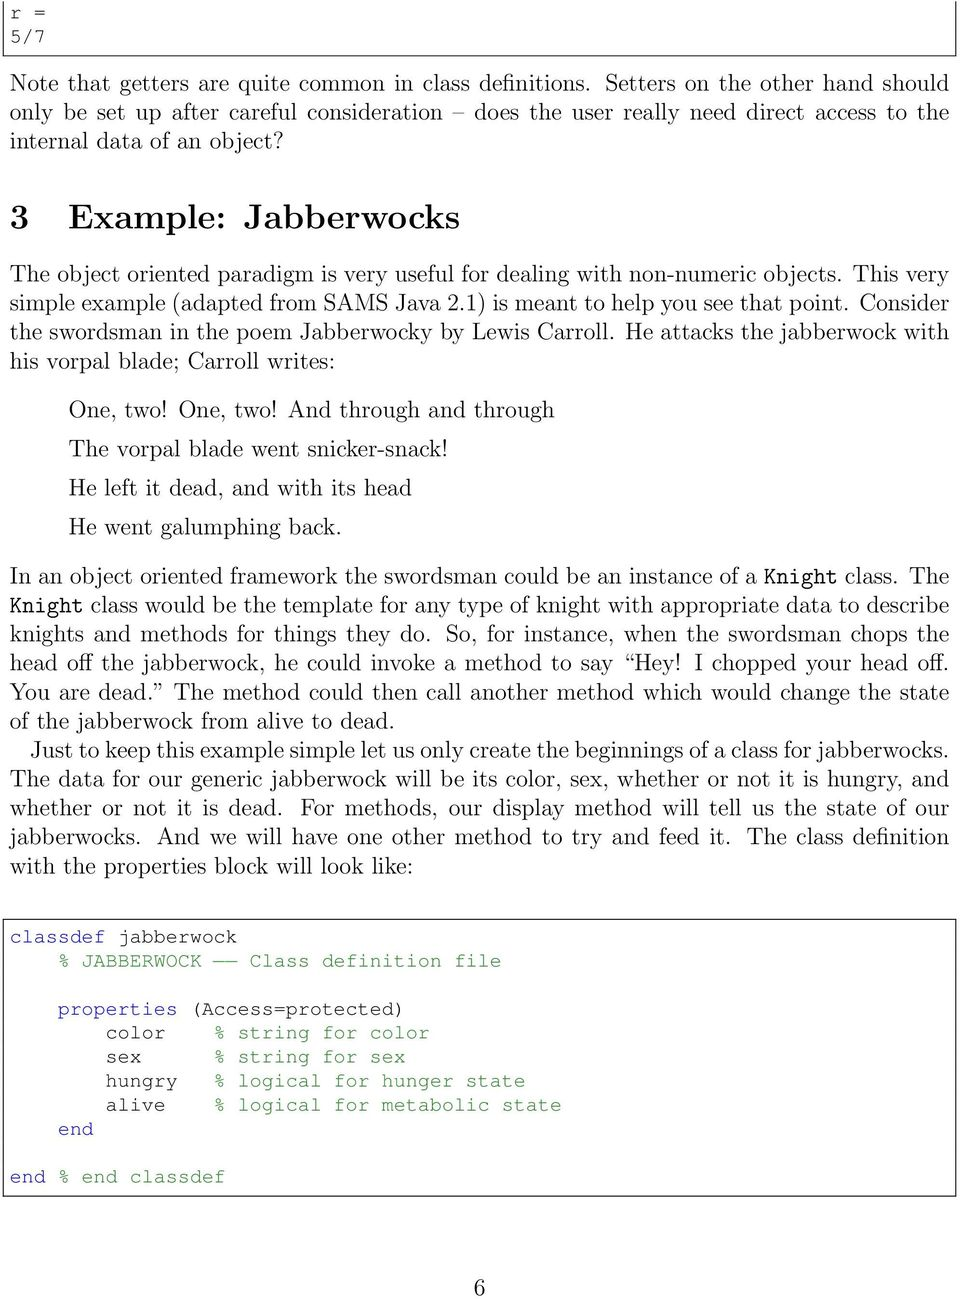 3 Example: Jabberwocks The object oriented paradigm is very useful for dealing with non-numeric objects. This very simple example (adapted from SAMS Java 2.1) is meant to help you see that point.